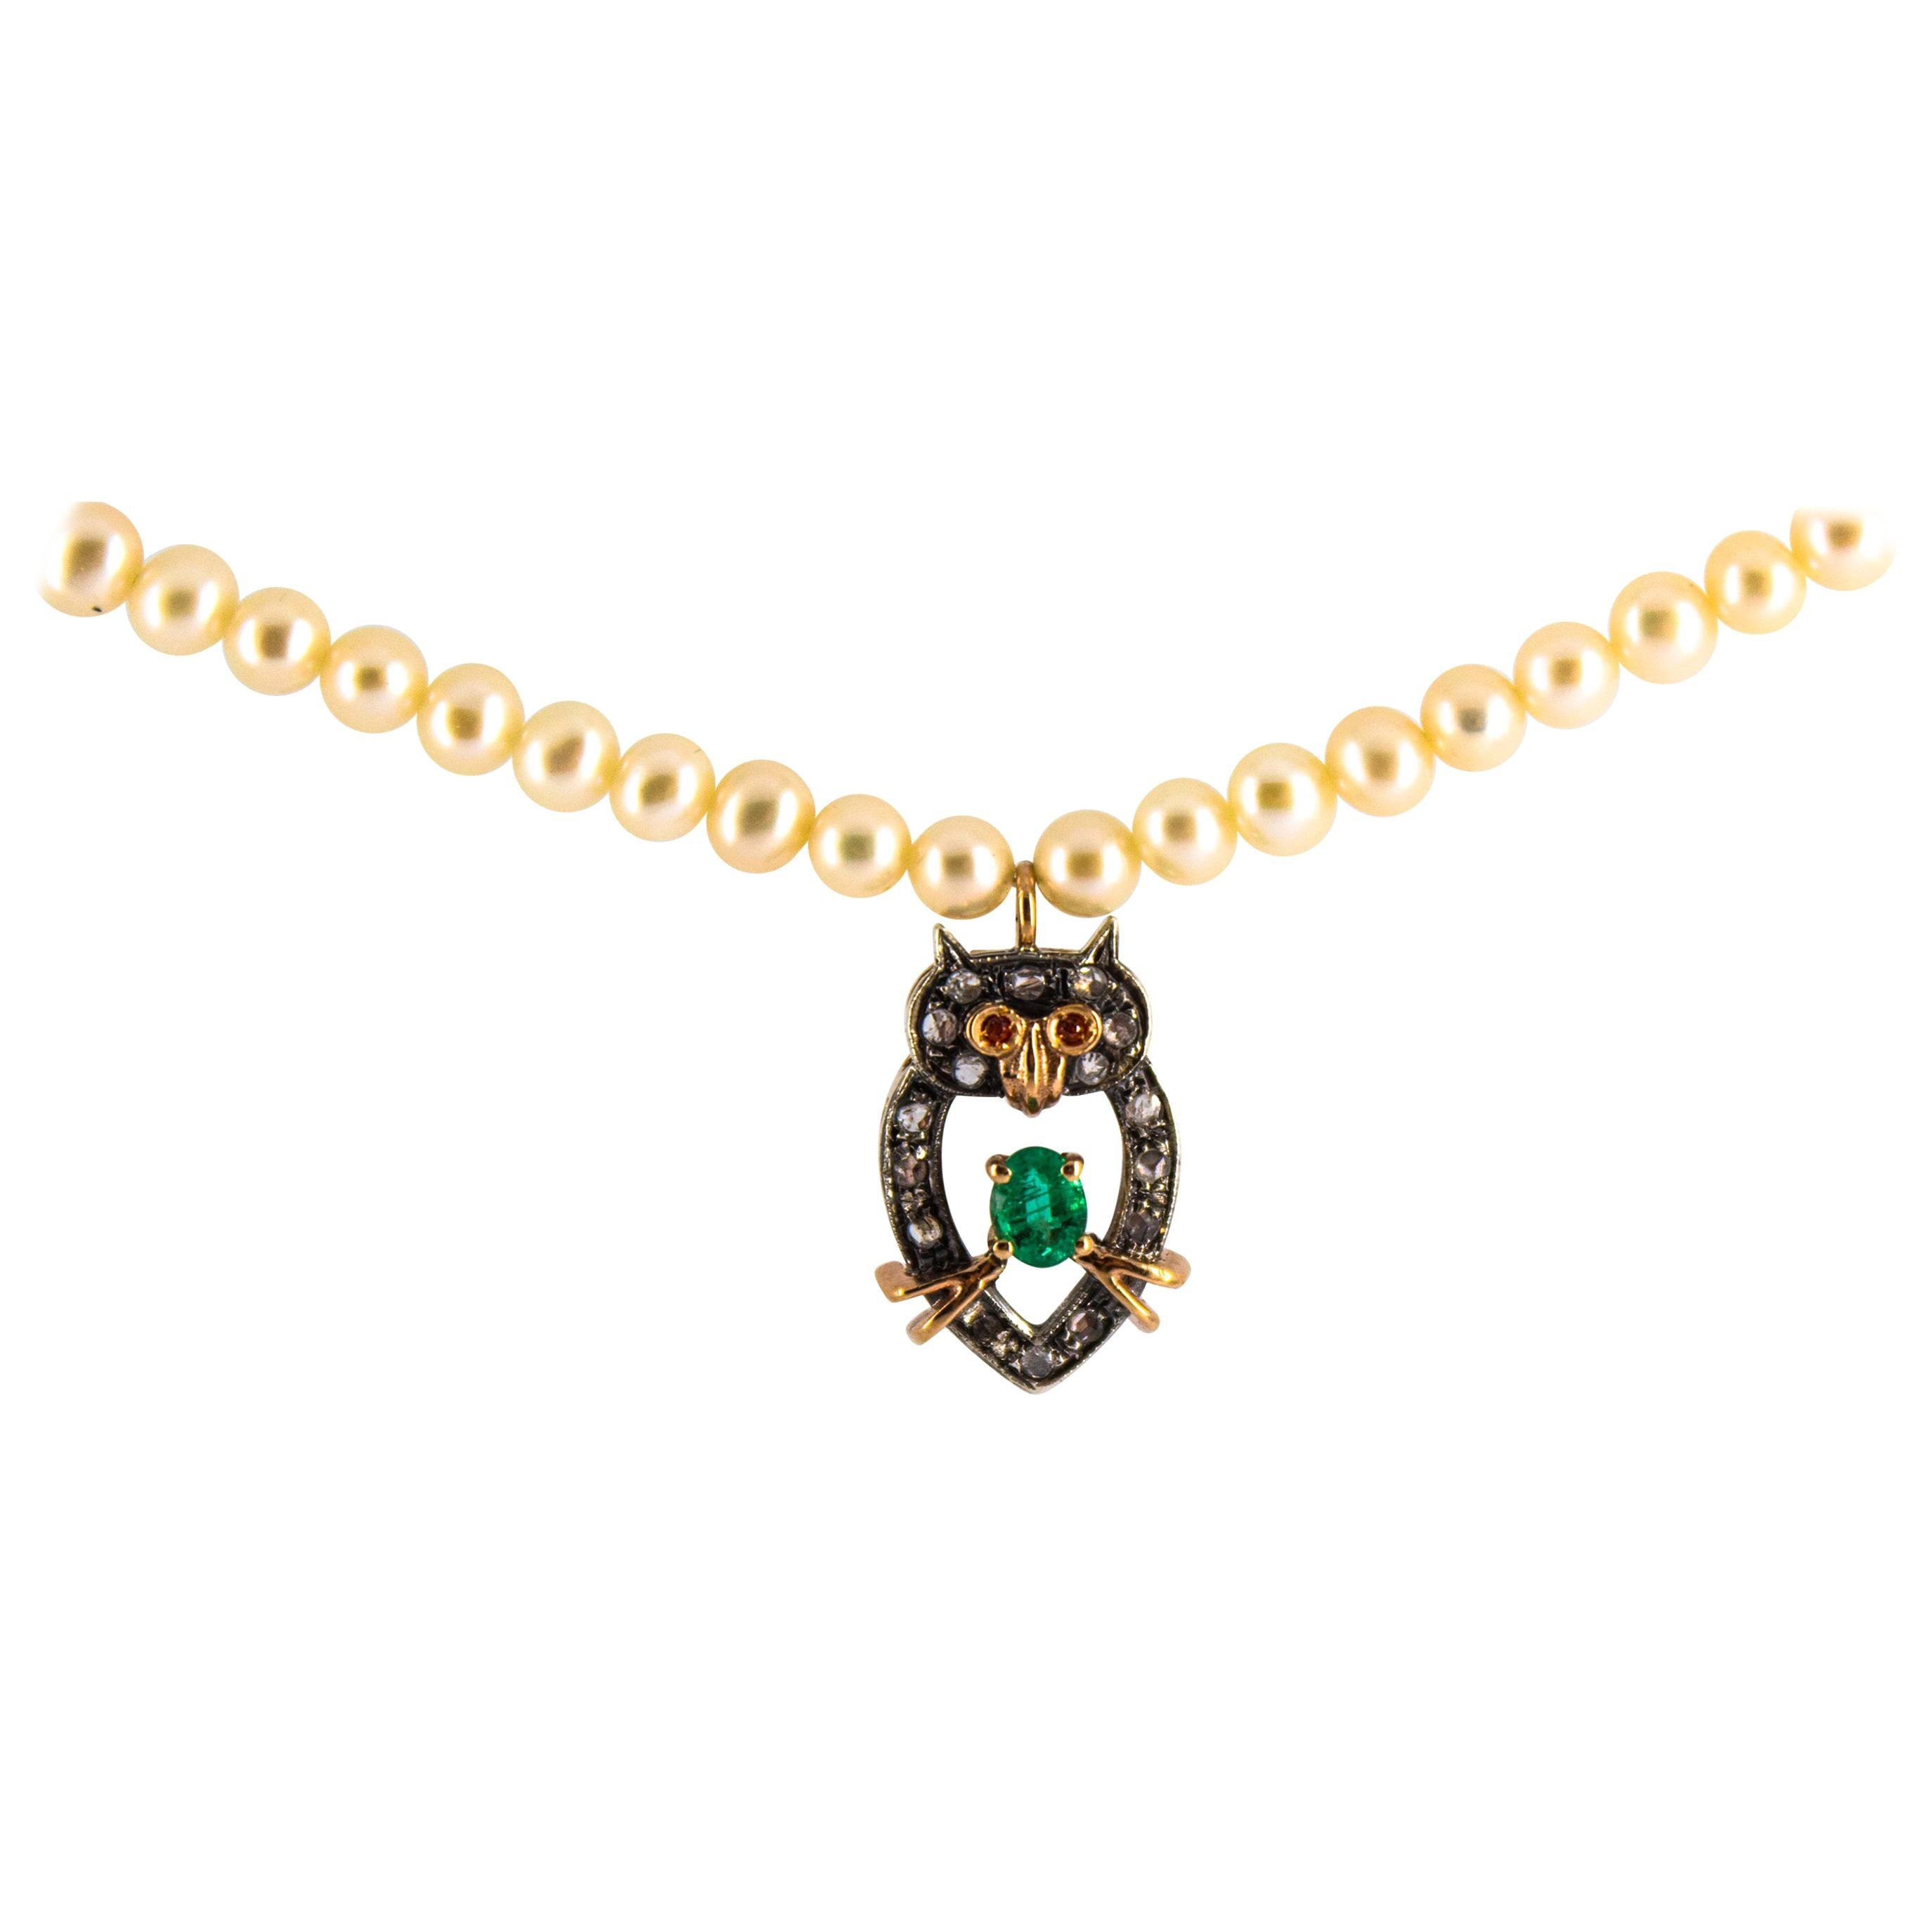 0.70 Carat White Diamond Emerald Pearl Yellow Gold Owl Pendant Beaded Necklace